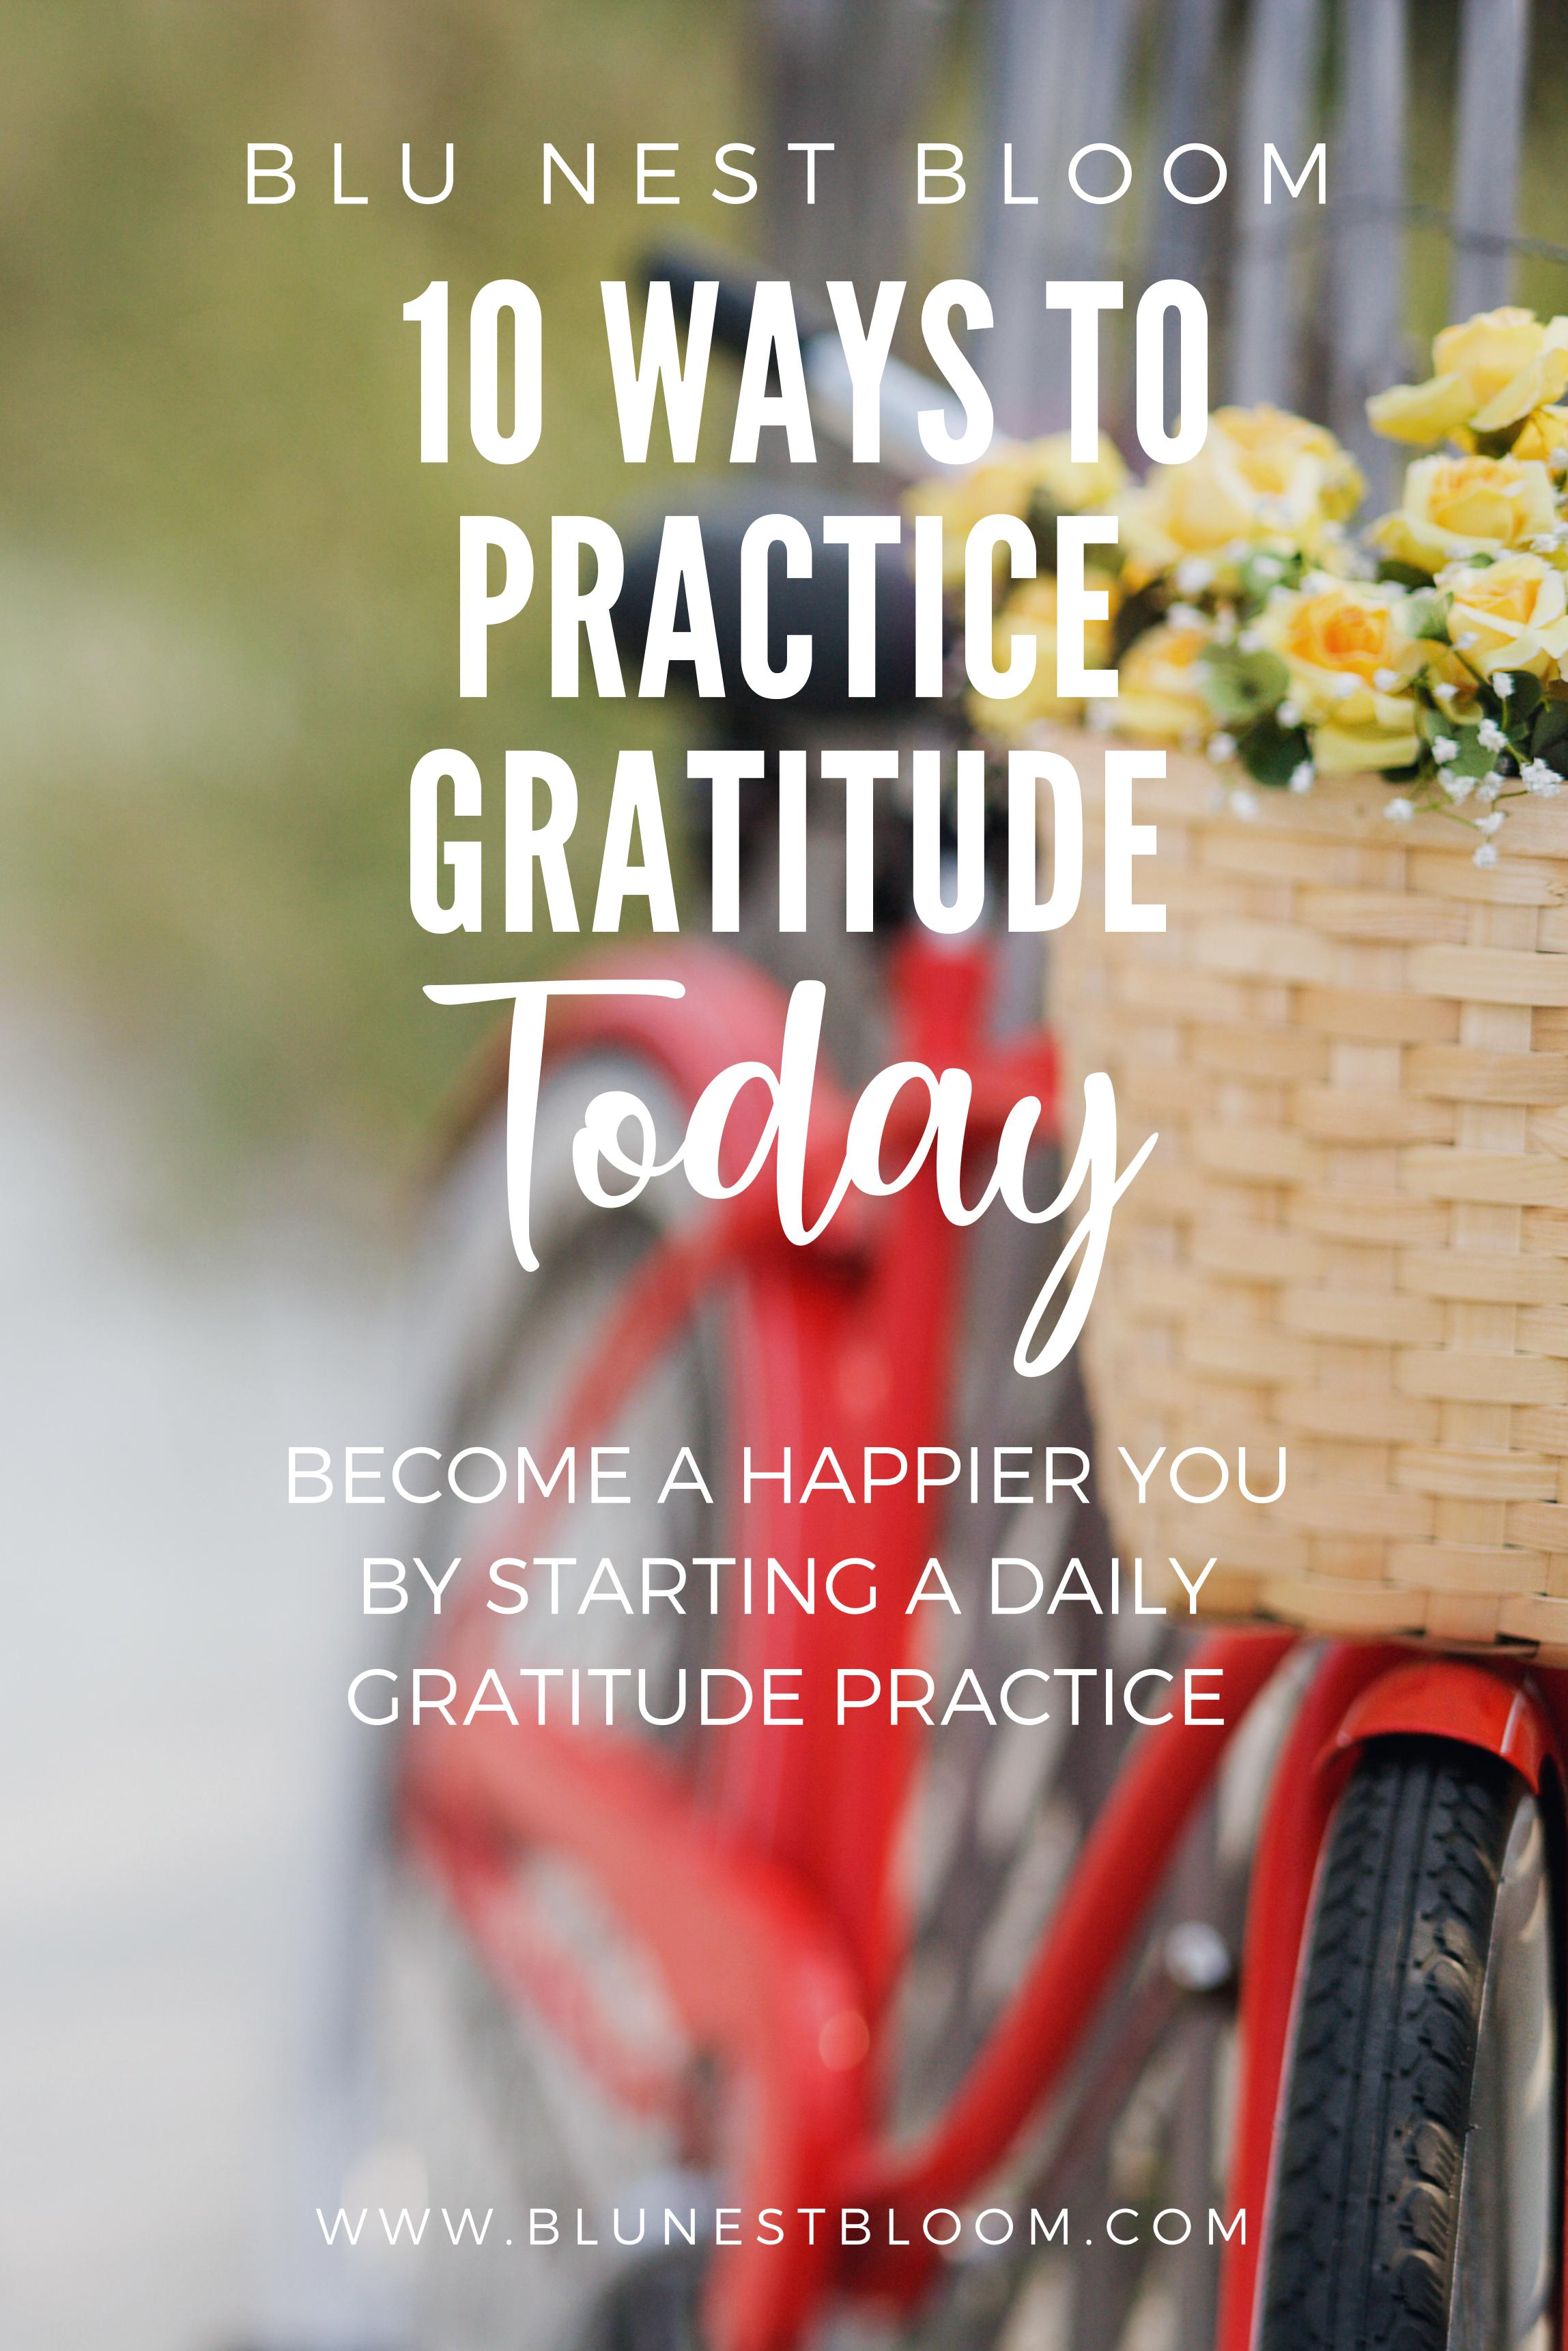 10 Ways To Practice Gratitude Today